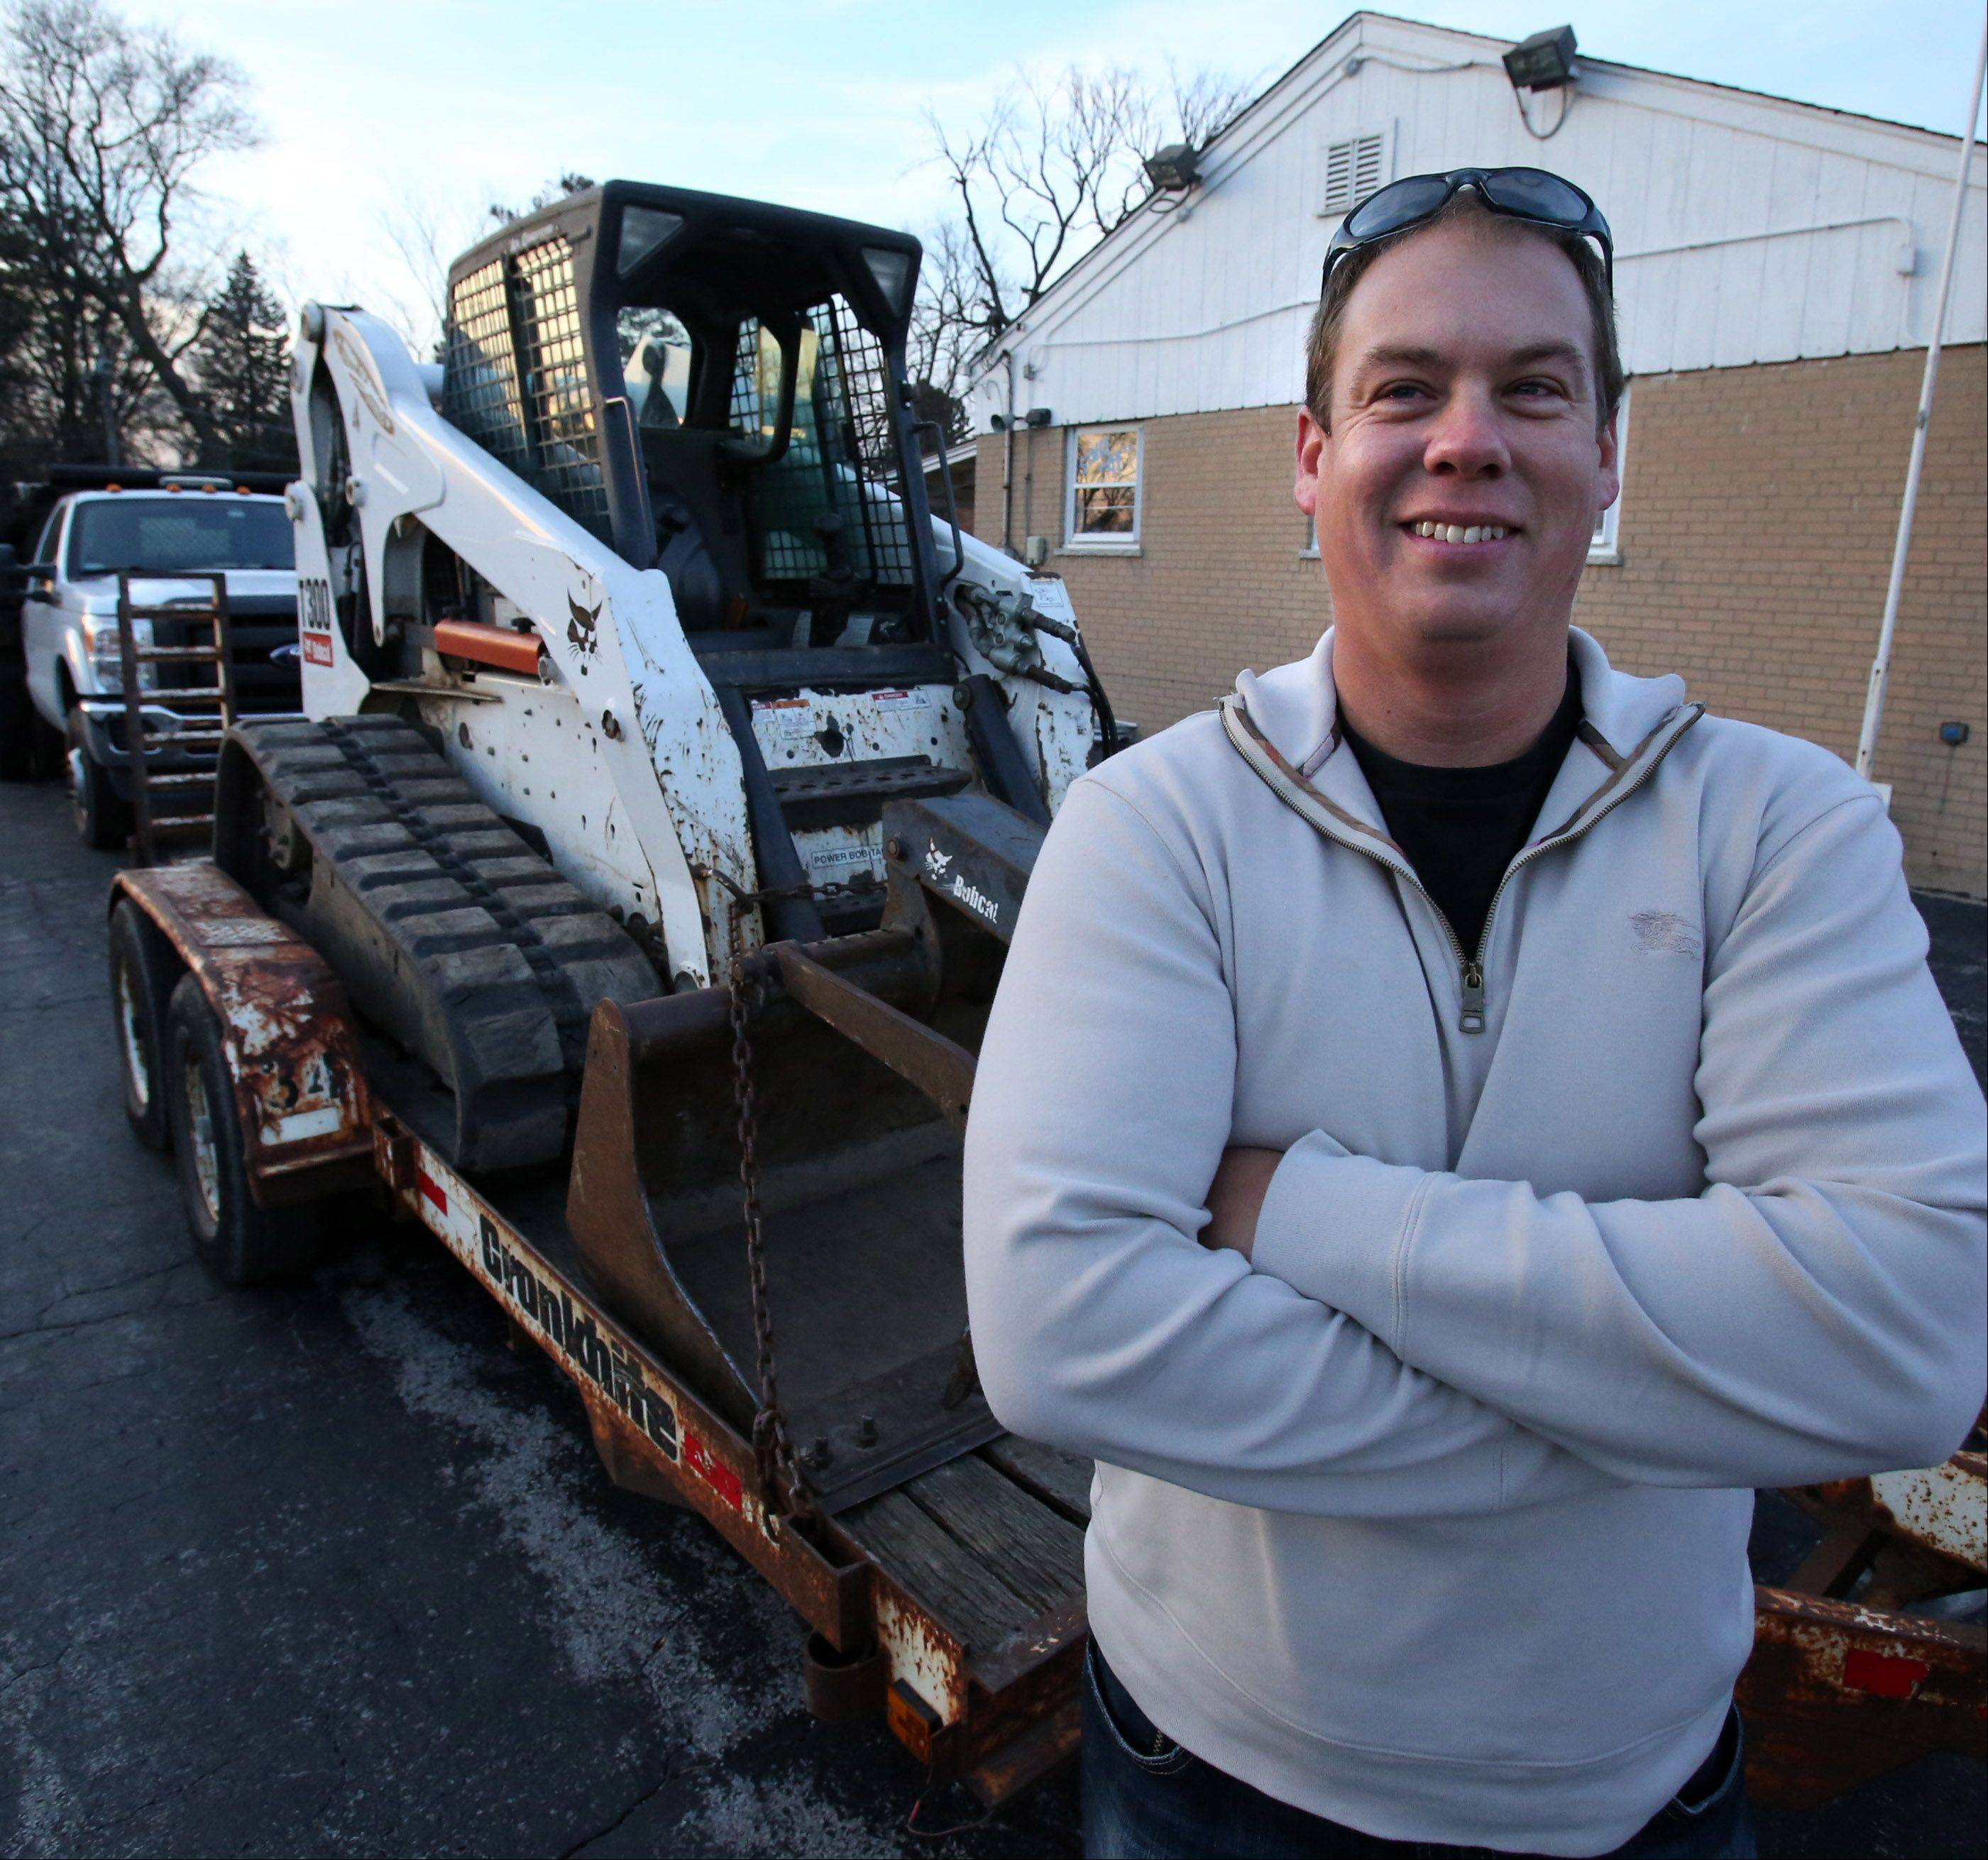 North Village Group CEO Sean Sandona with construction equipment in Des Plaines which he says his company is taking to tornado-ravaged Washington on Saturday.